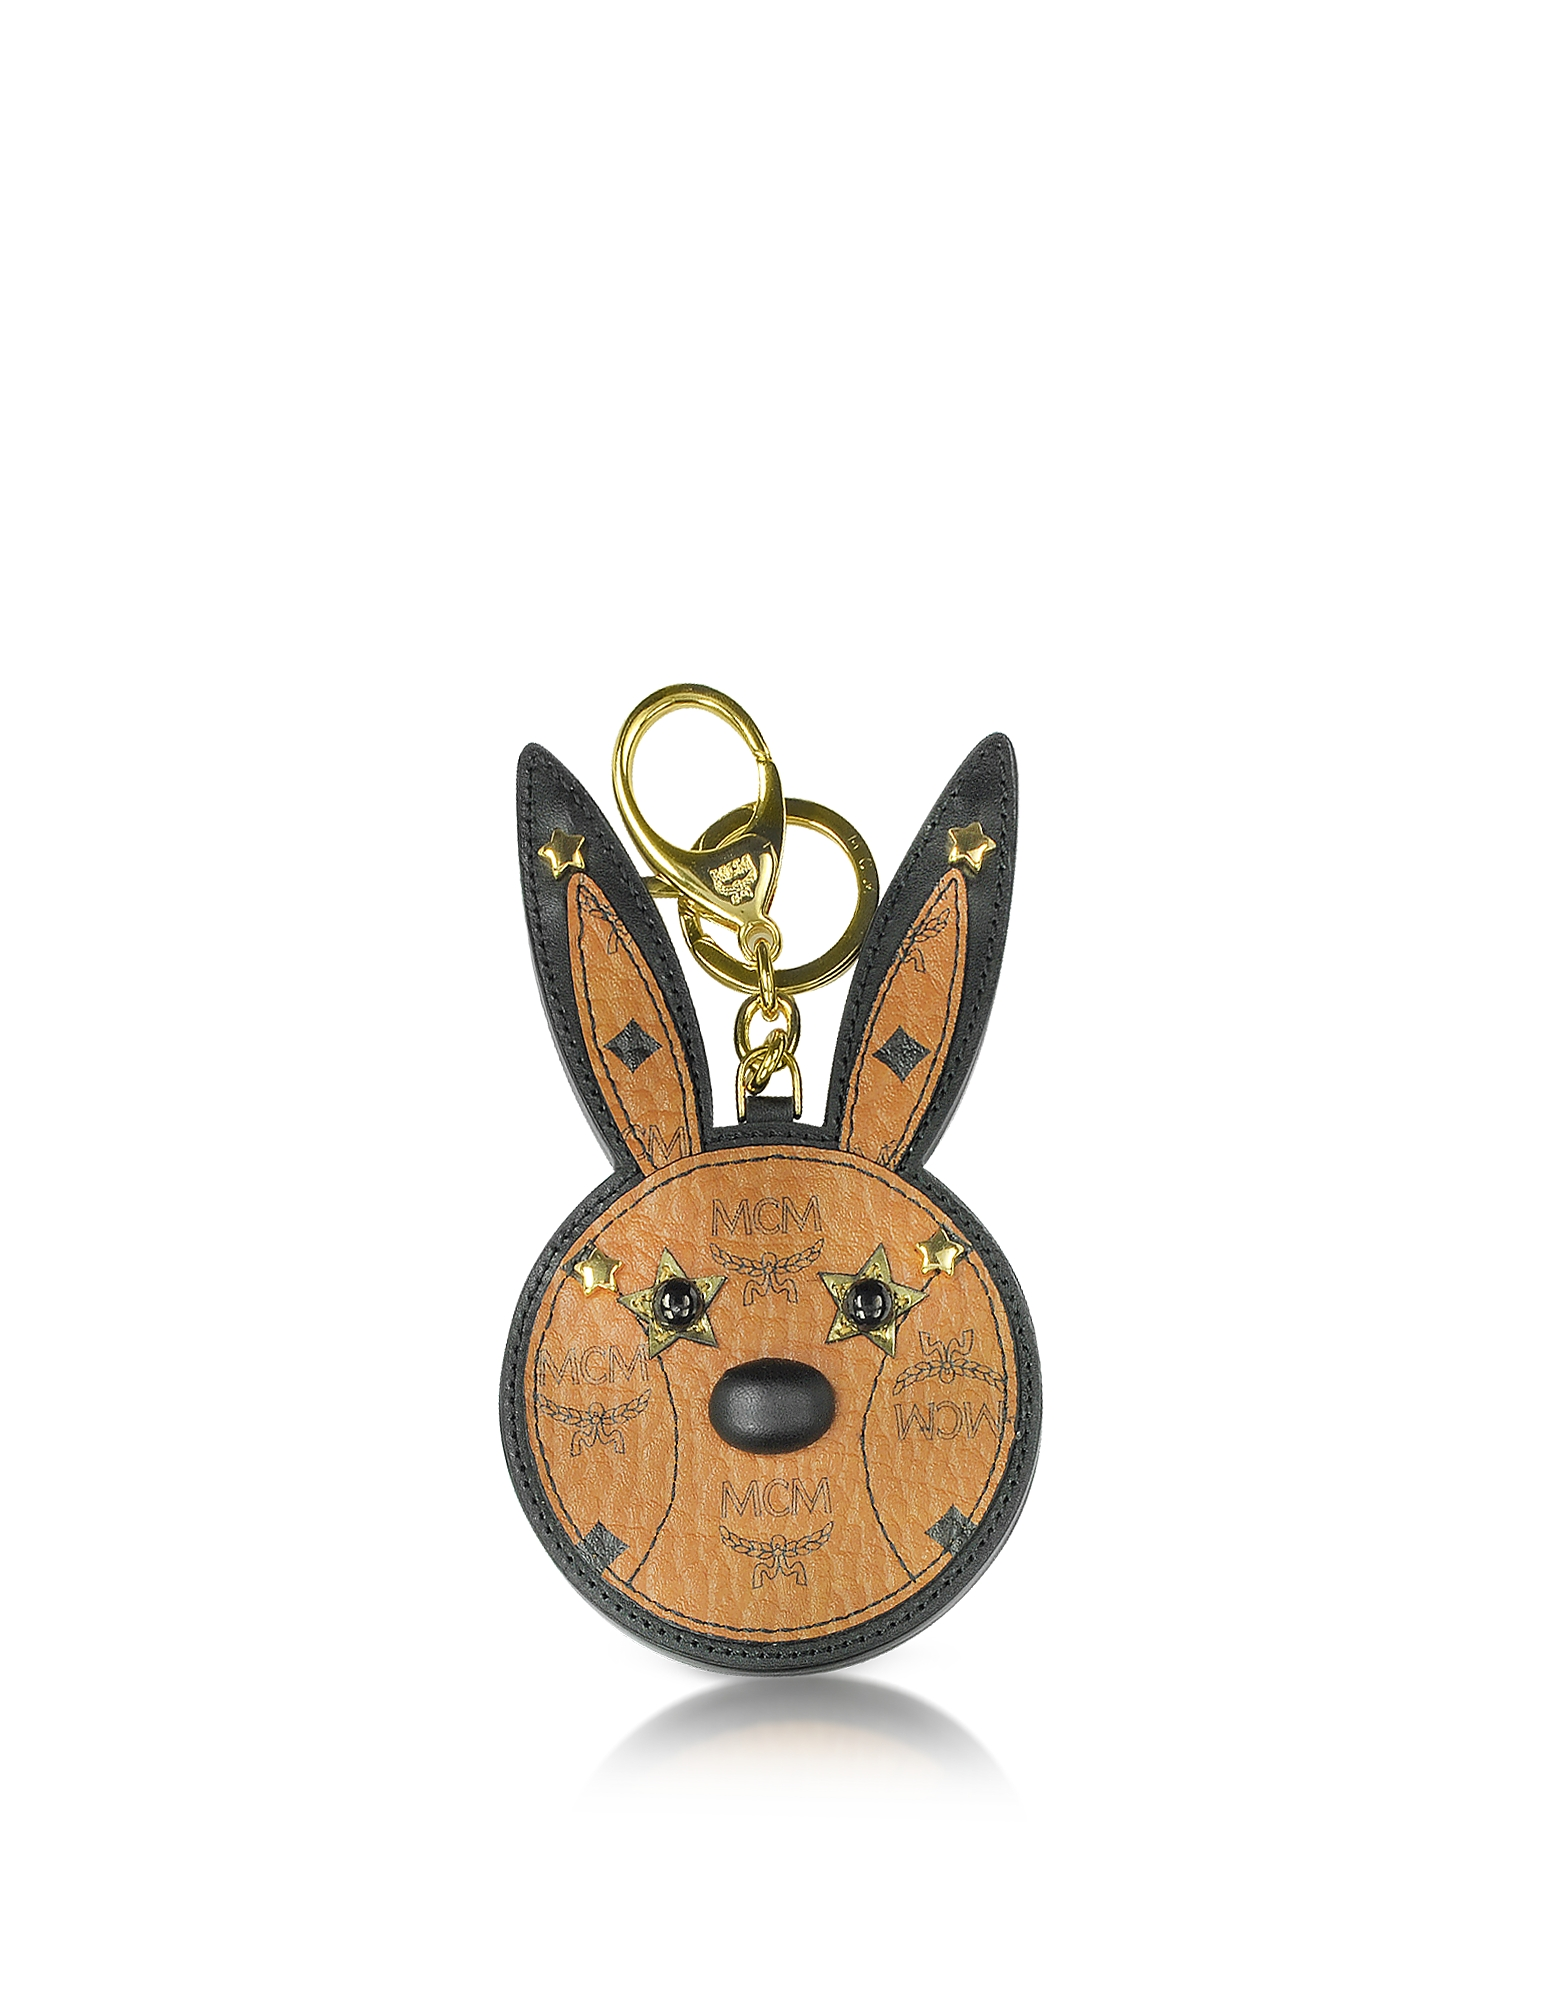 MCM Handbags, Cognac Rabbit Mirror Charm